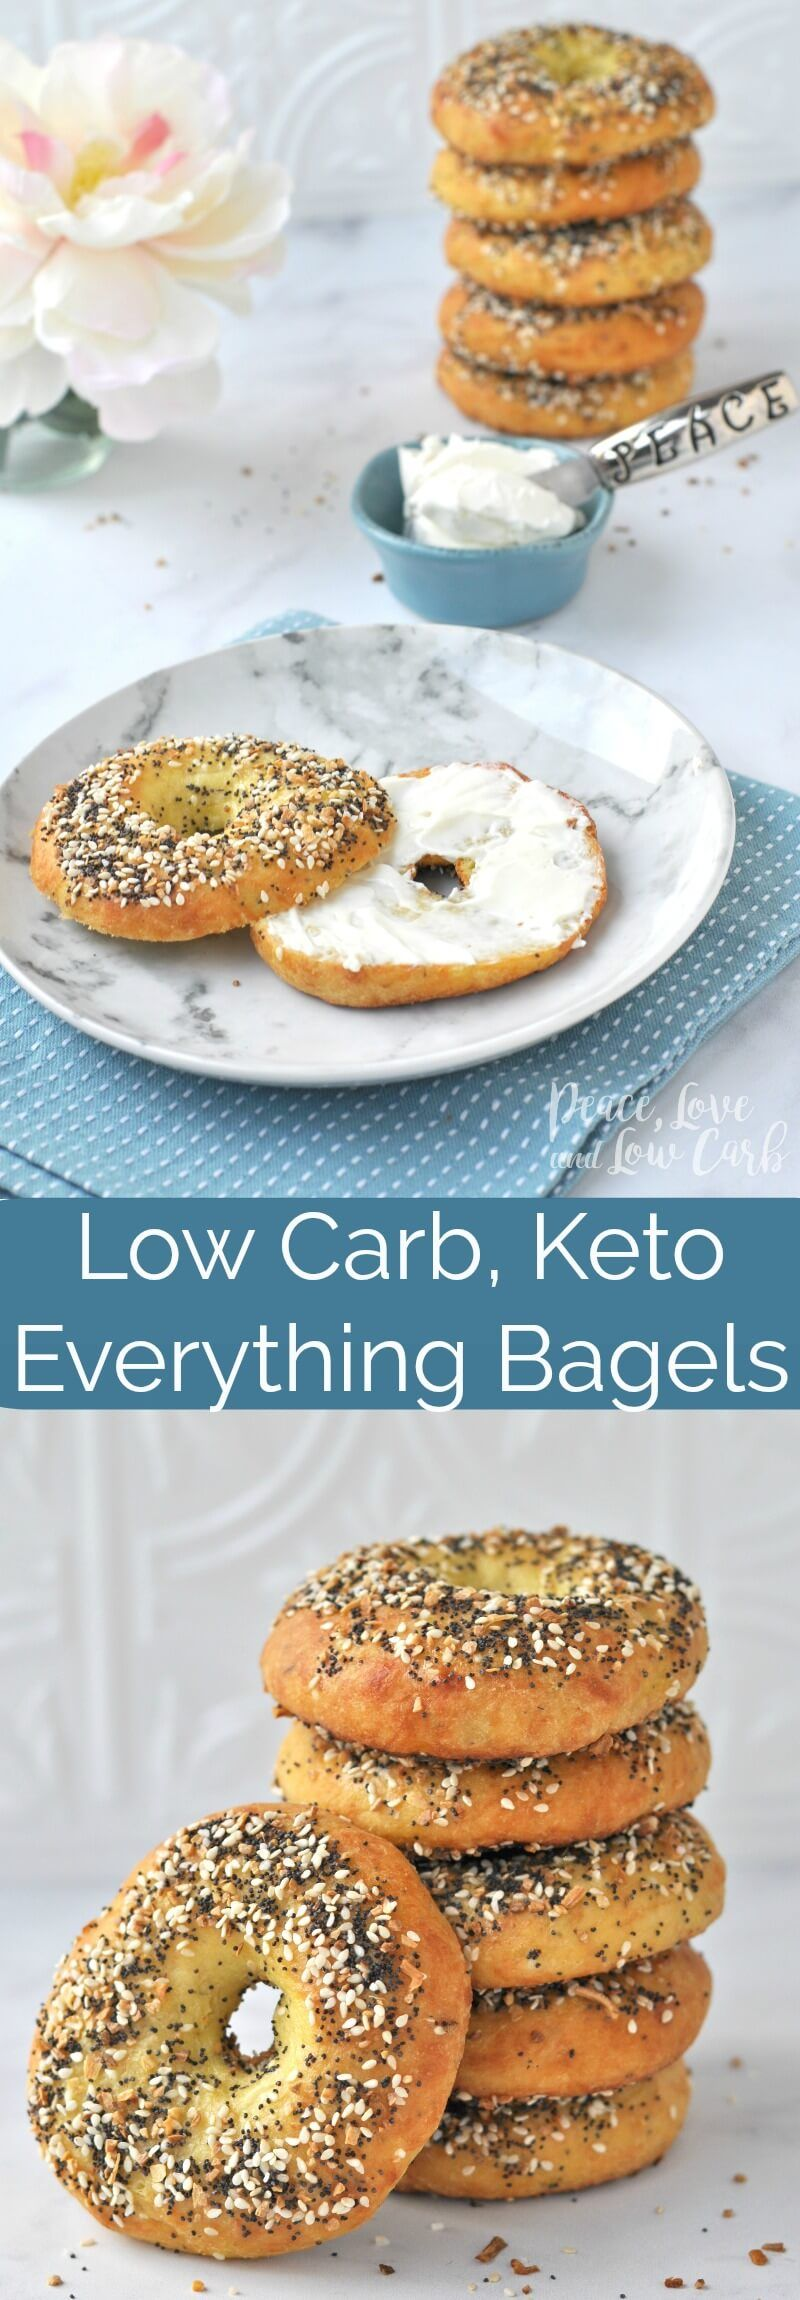 Low Carb Keto Everything Bagels | Peace Love and Low Carb via @PeaceLoveLoCarb